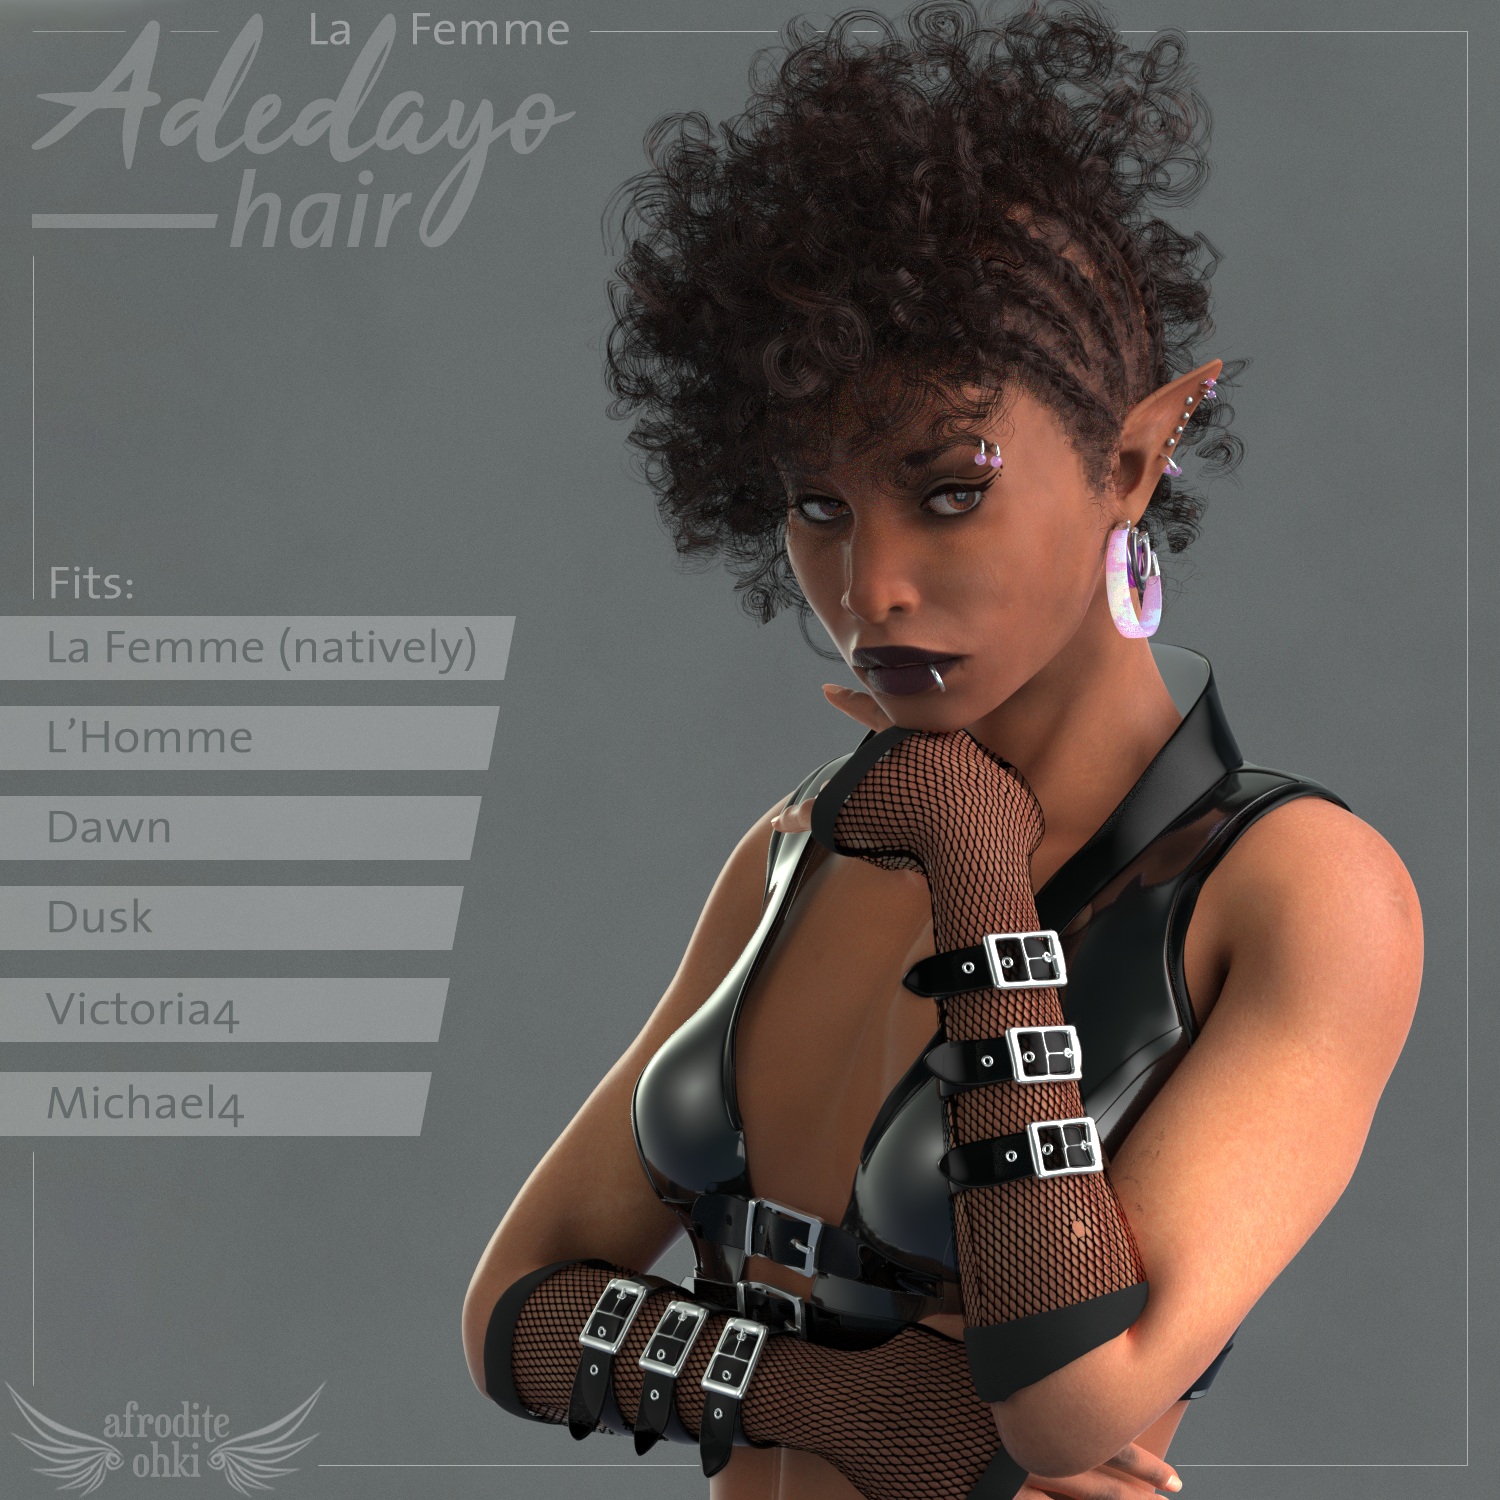 Adedayo Hair for La Femme and more